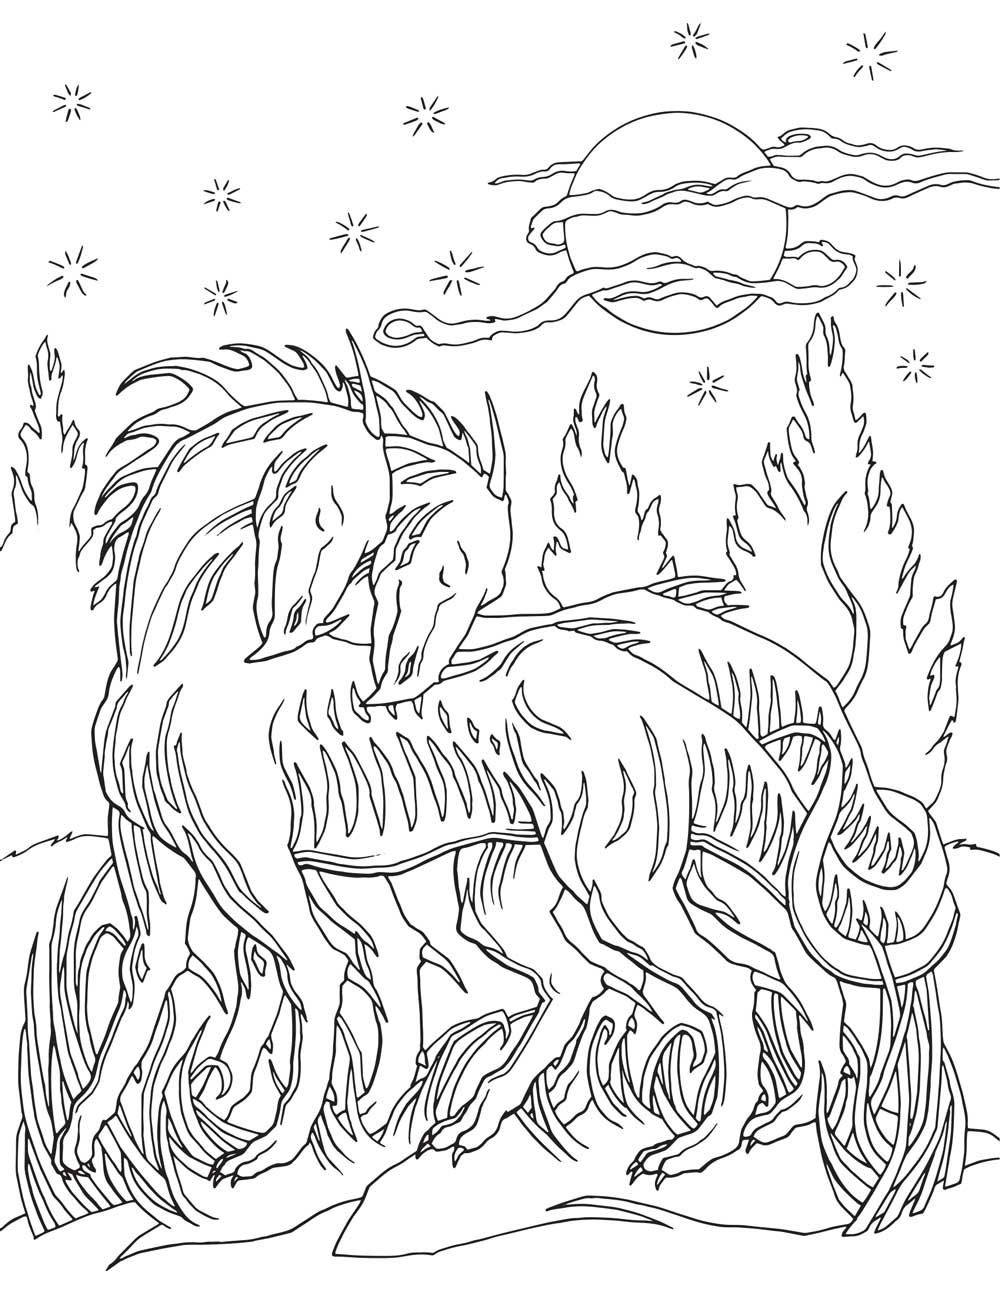 Dragon Drawing Books at GetDrawings.com | Free for personal use ...